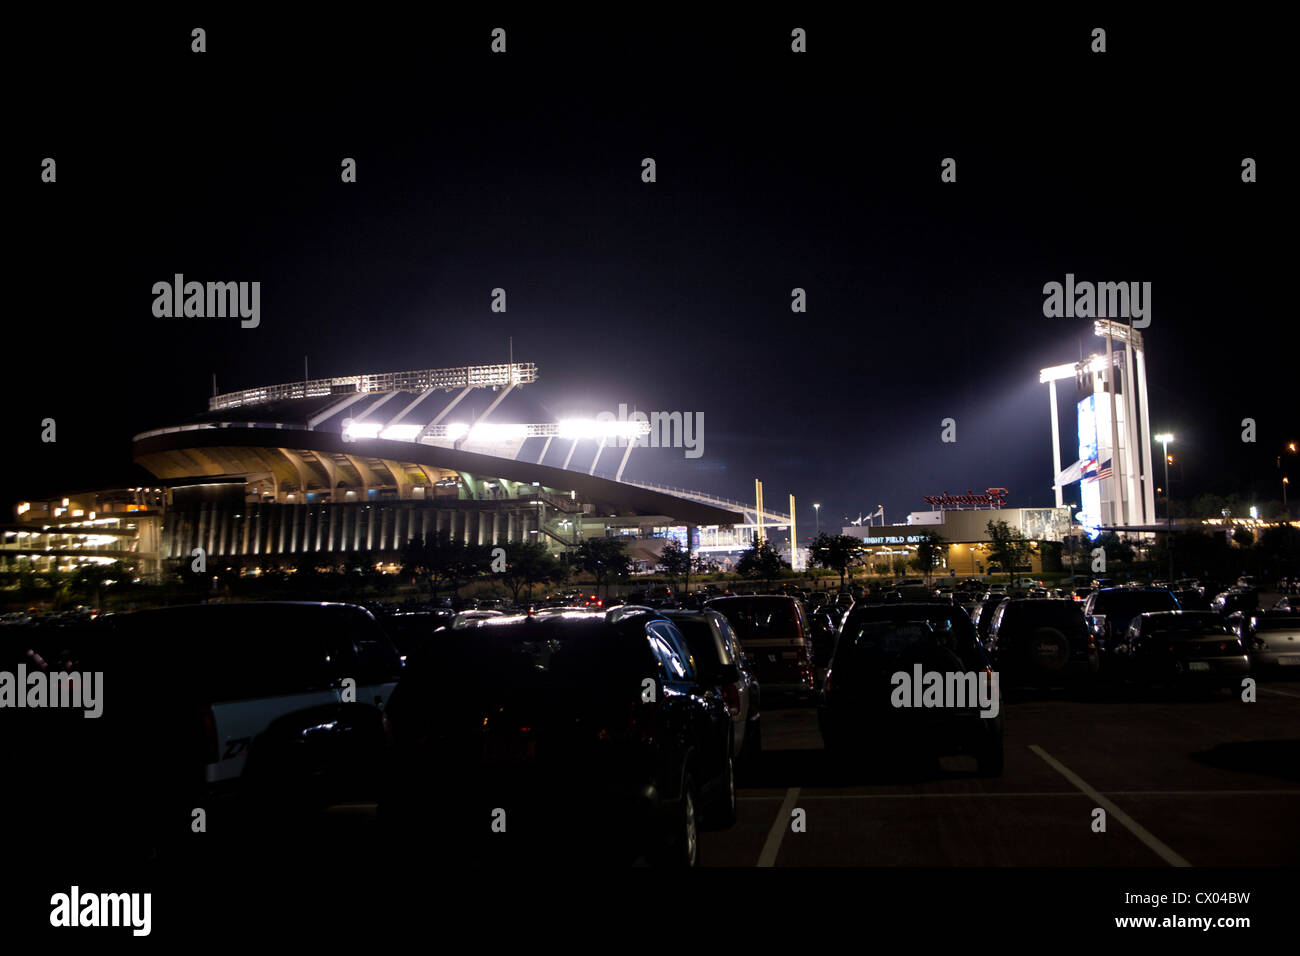 Kauffman Stadium - Kansas City Royals - Stock Image